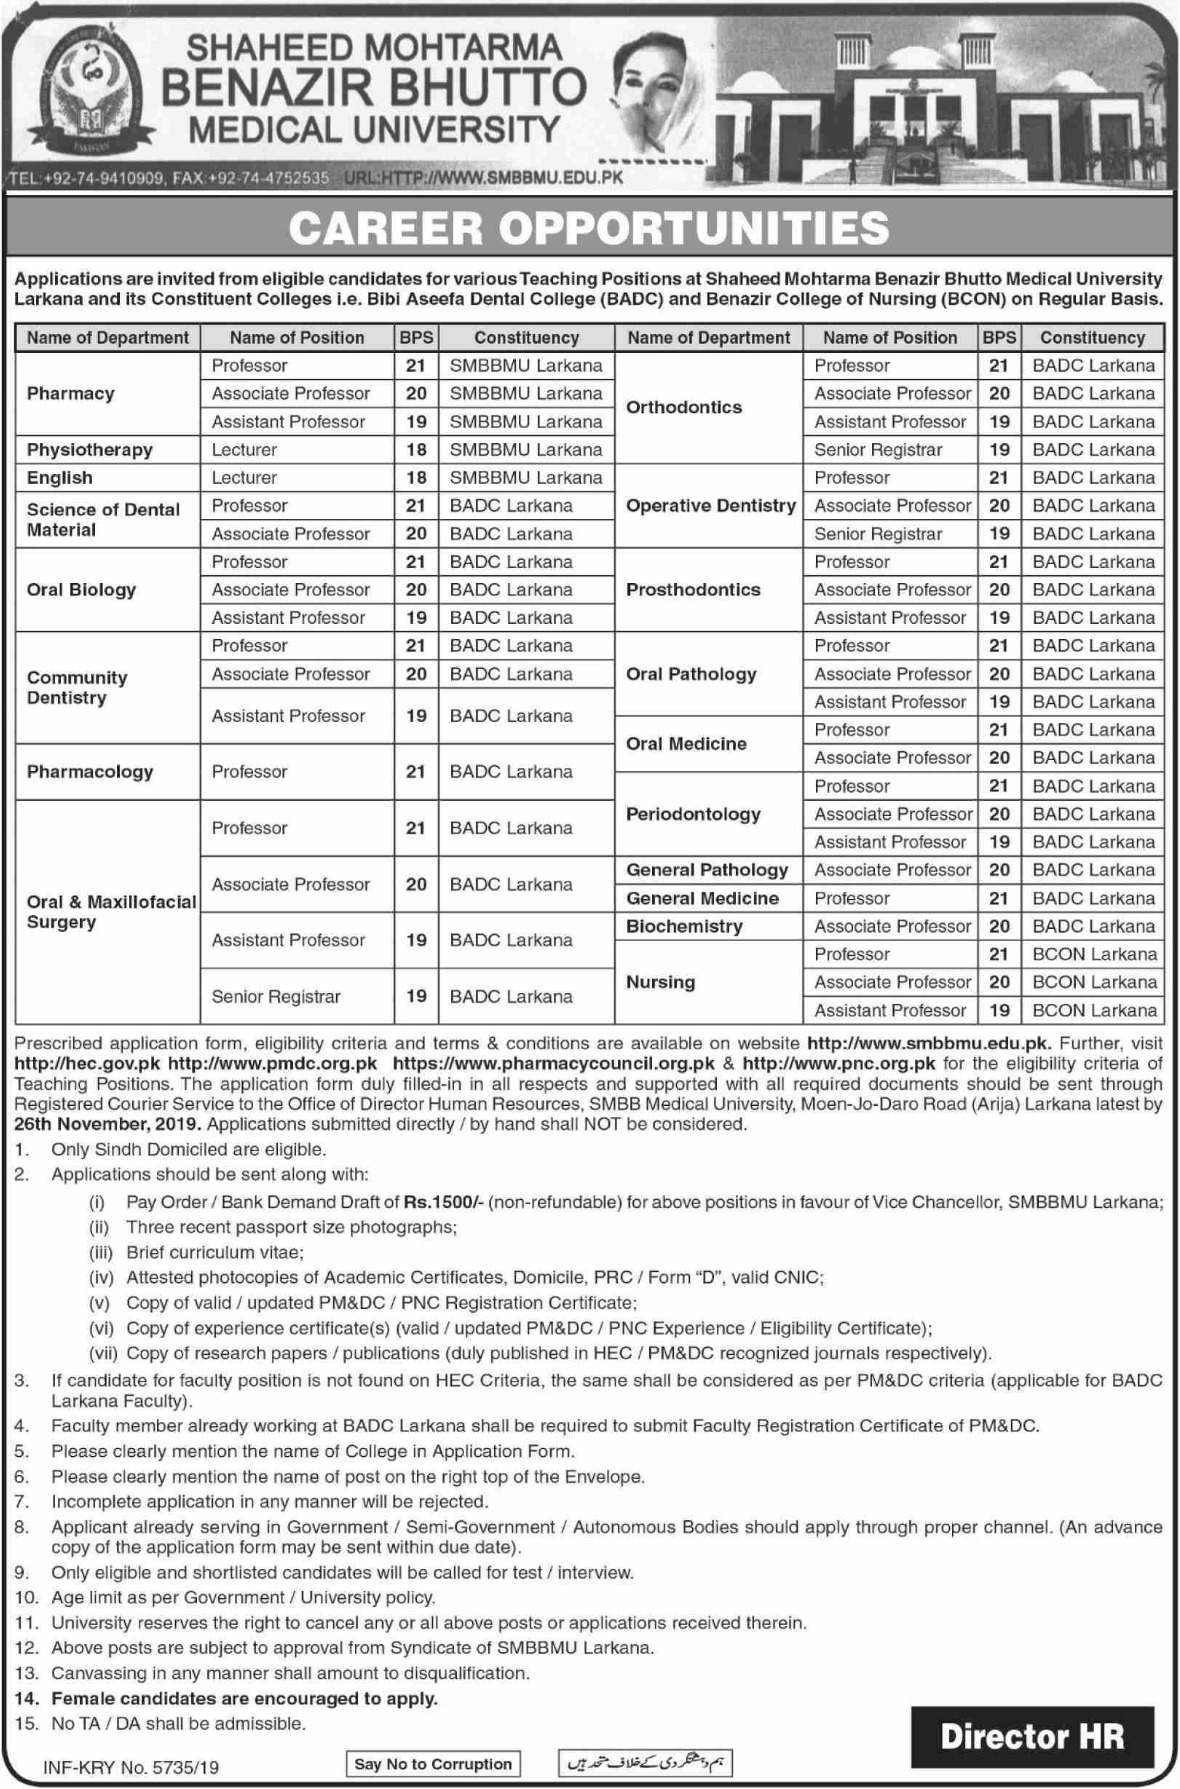 Shaheed Mohtarma Benazir Bhutto Medical University SMBBMU Jobs 2019 Sindh